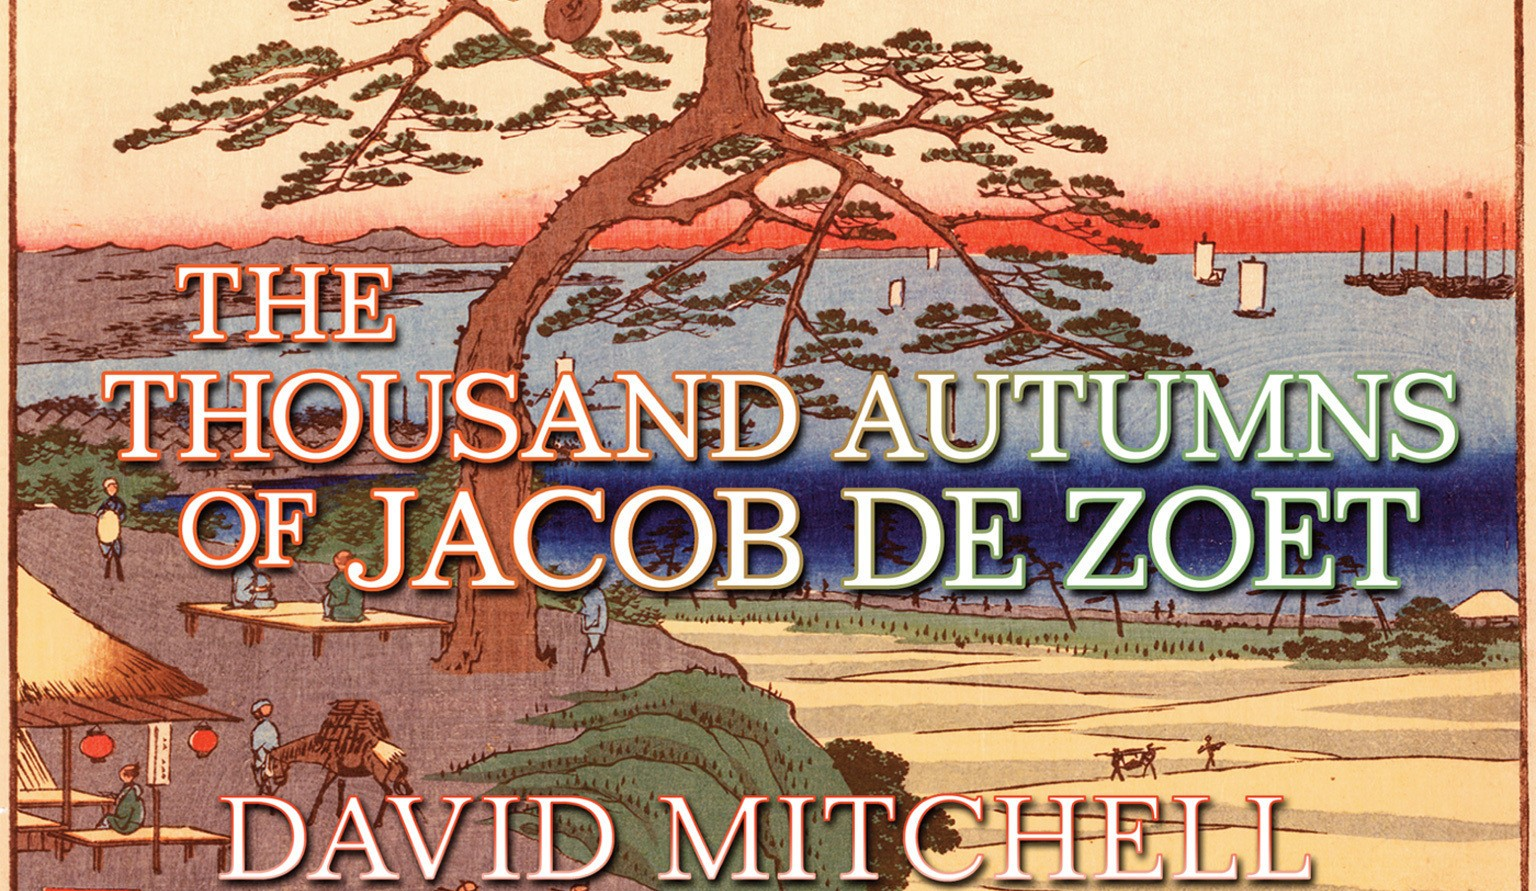 the_thousand_autumns_of_jacob_de_zoet.jpg (8.54 Kb)